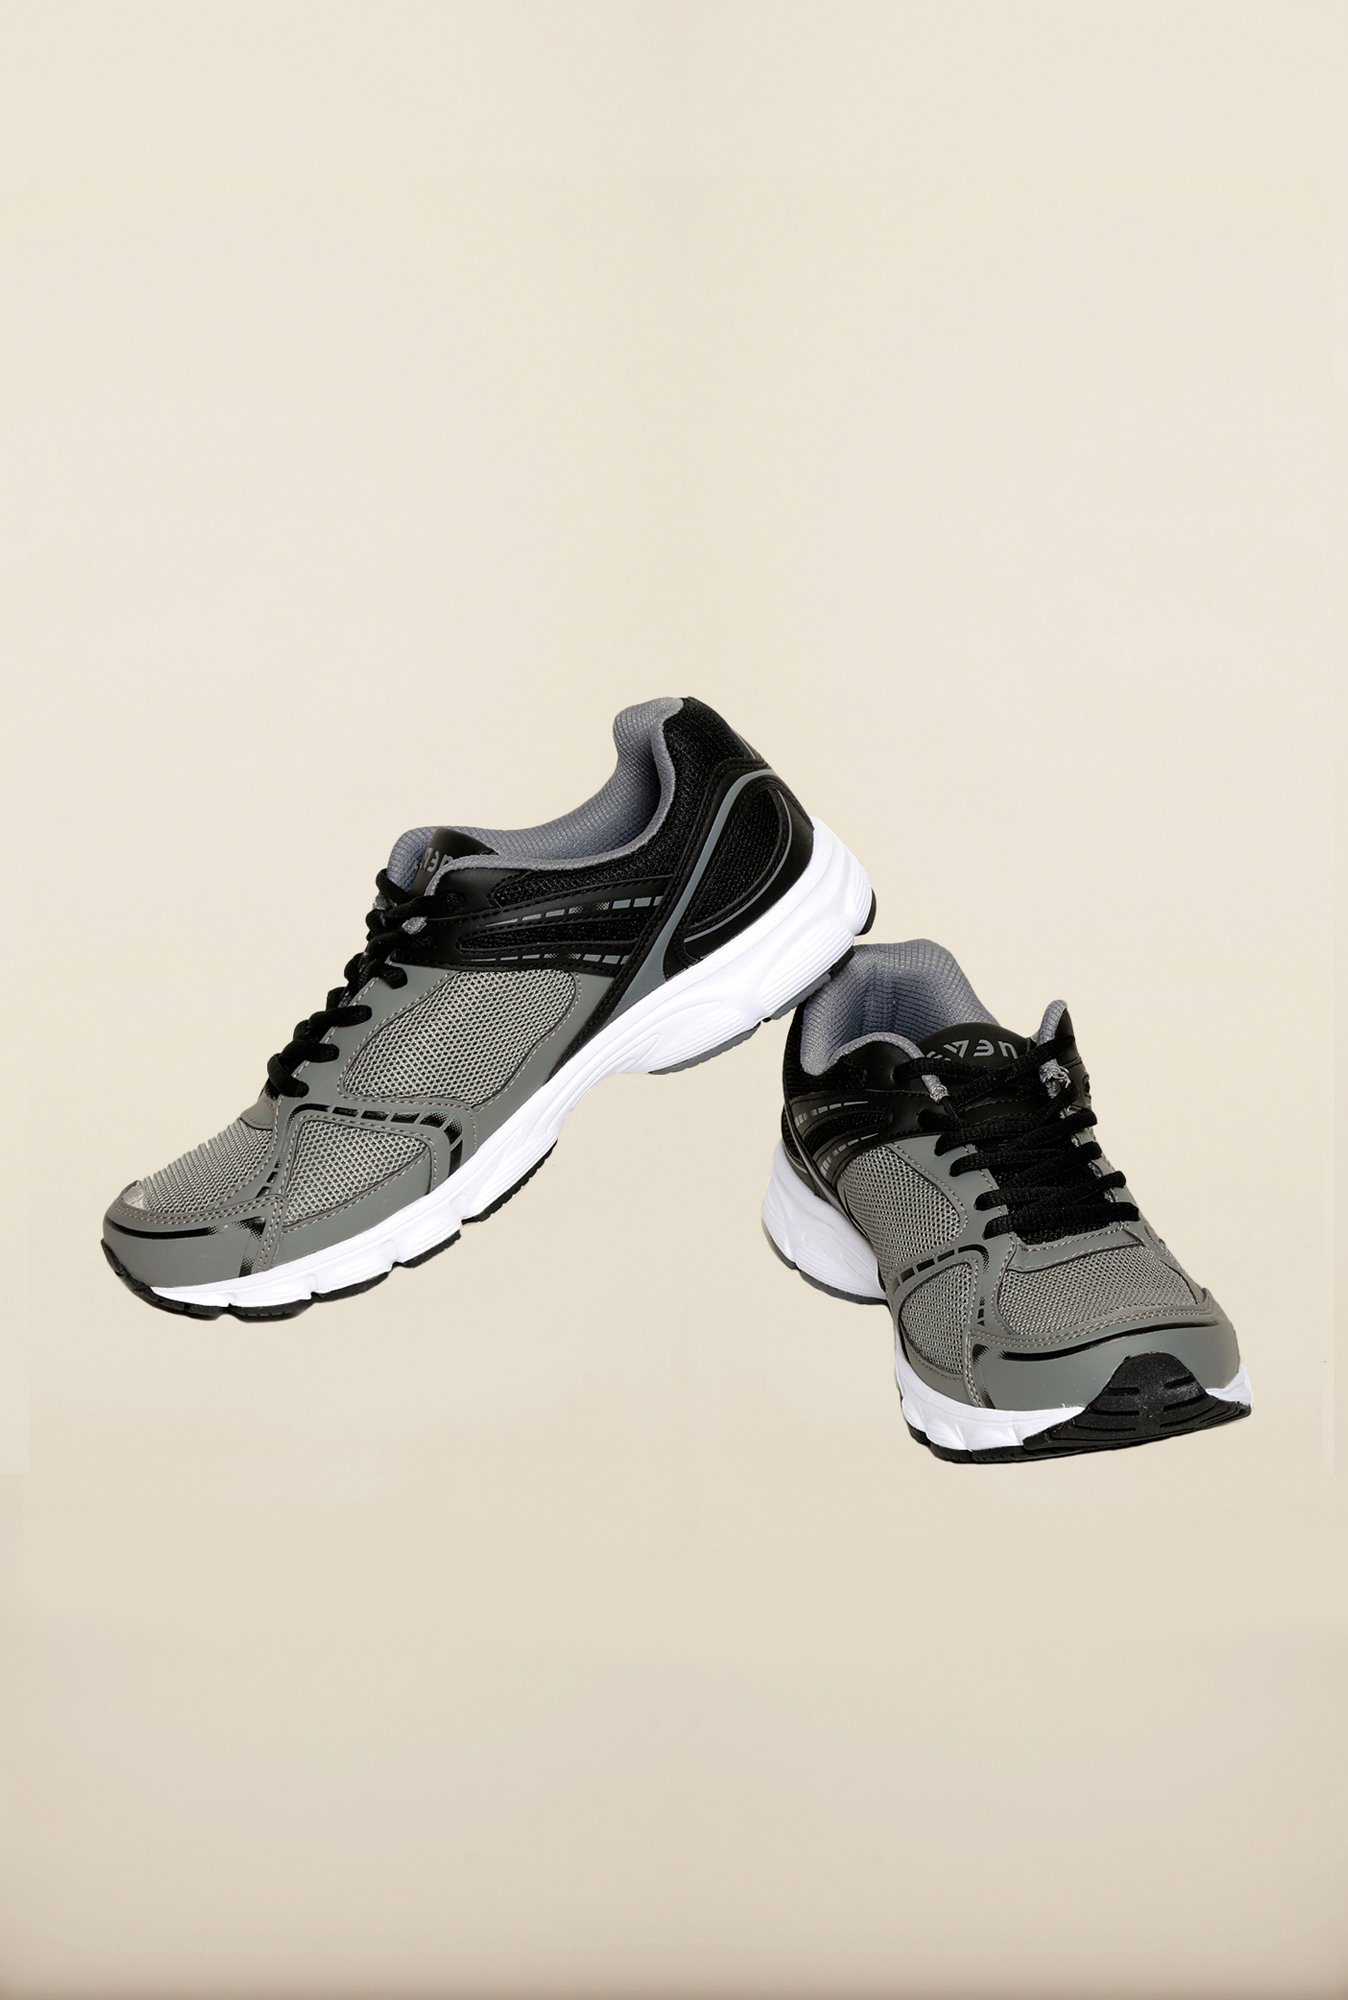 Seven Grey & Black Running Shoes